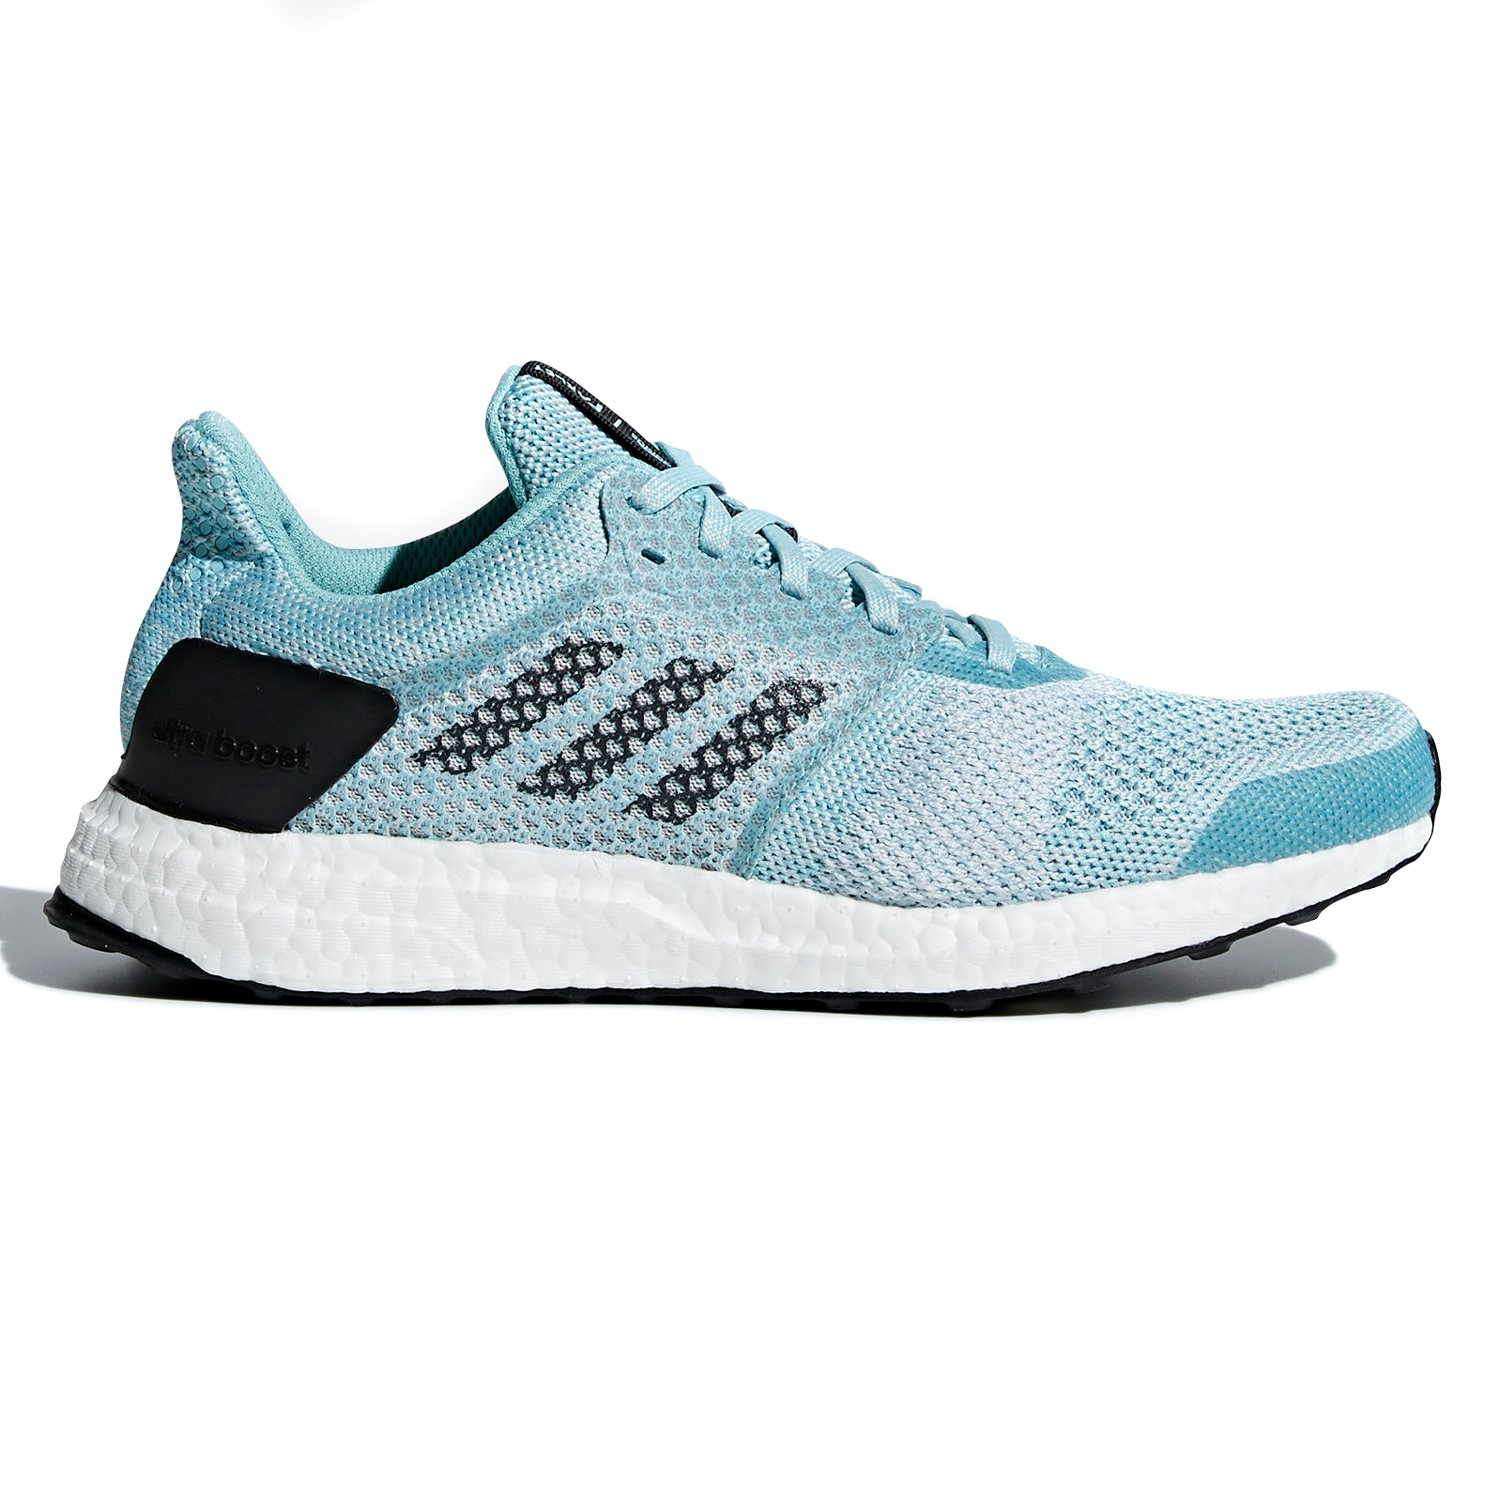 b7936b2b9ce Adidas Ultra Boost ST Parley - Womens Running Shoes - Blue White Ink ...